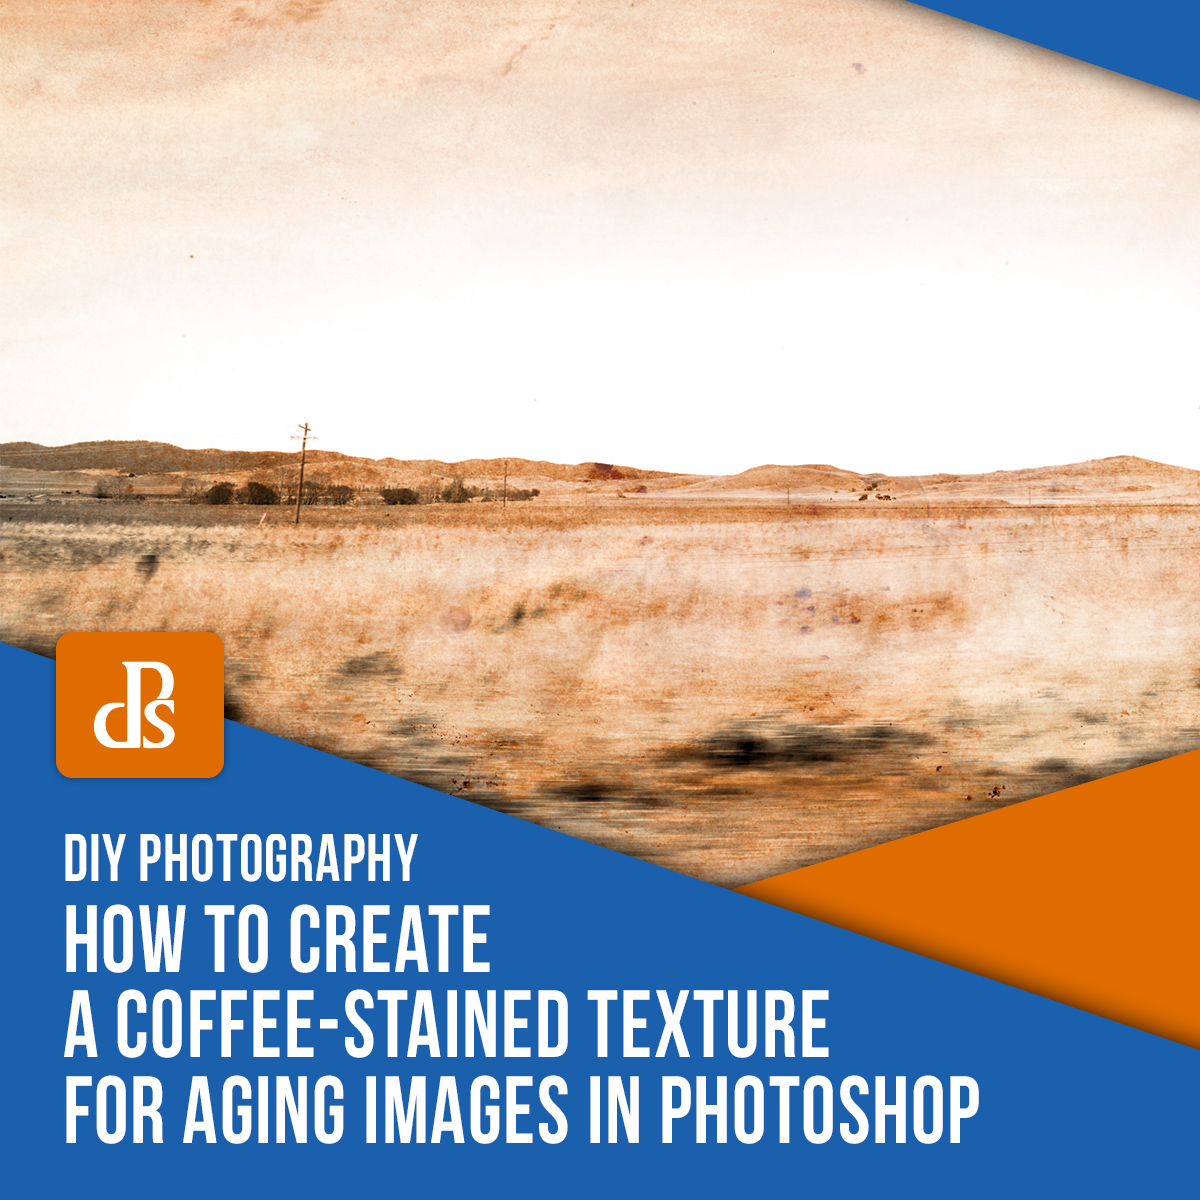 DIY: How to Create a Coffee-Stained Texture for Aging Images in Photoshop